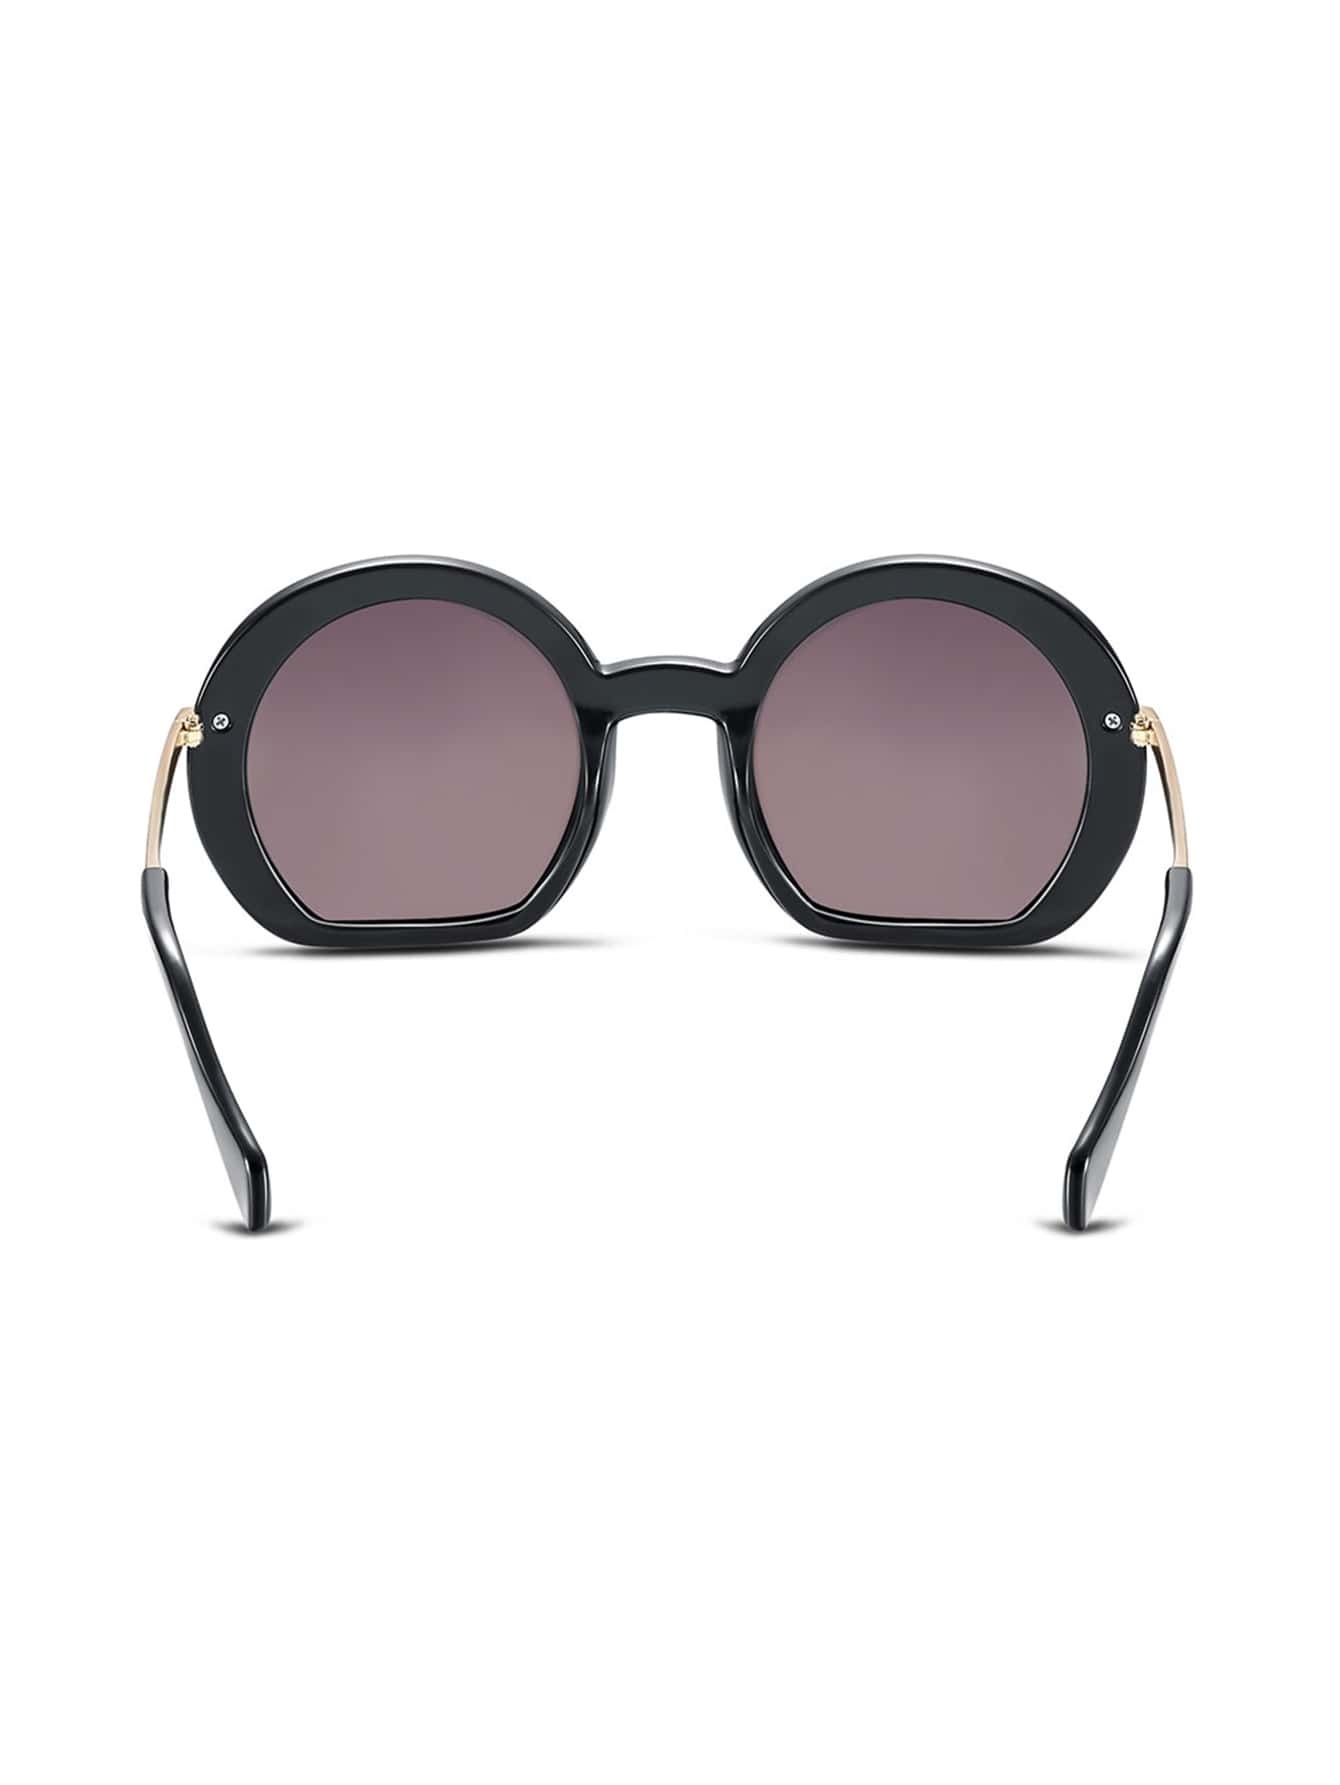 Big Gold Frame Sunglasses : Black Frame Large Lens Gold Arm Sunglasses -SheIn(Sheinside)